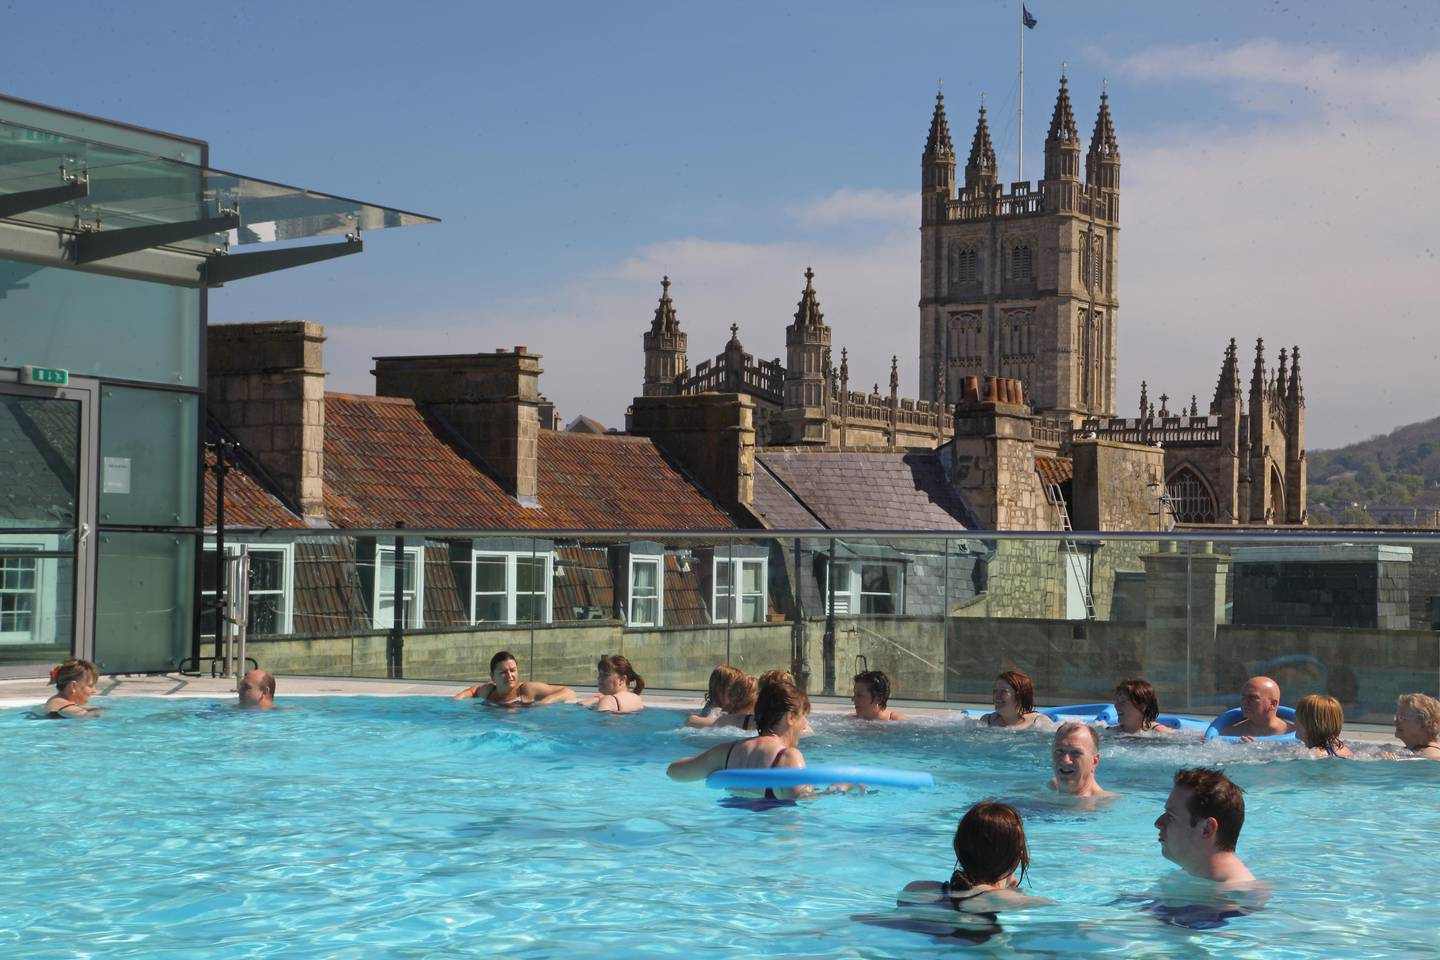 BATH, ENGLAND - APRIL 21:  Visitors enjoy the sunshine as they swim in the rooftop pool of the Thermae Bath Spa on April 21, 2009 in Bath, England. Despite the global economic downturn, visitors to the historic Unesco World Heritage city's attractions - including the 40million GBP Spa development and the only place in Britain where you can bathe in natural hot spring waters - have held steady, helped in part by the weakness of the pound encouraging foreigners to visit Britain, and British holidaymakers to stay at home. In 2007, nearly 4 million visitors earned the city's tourism industry 432 million GBP and early indicators suggest that the figures will be very similar for this year.  (Photo by Matt Cardy/Getty Images) *** Local Caption ***  WK30AU-TR-THARMAESPA02.jpg